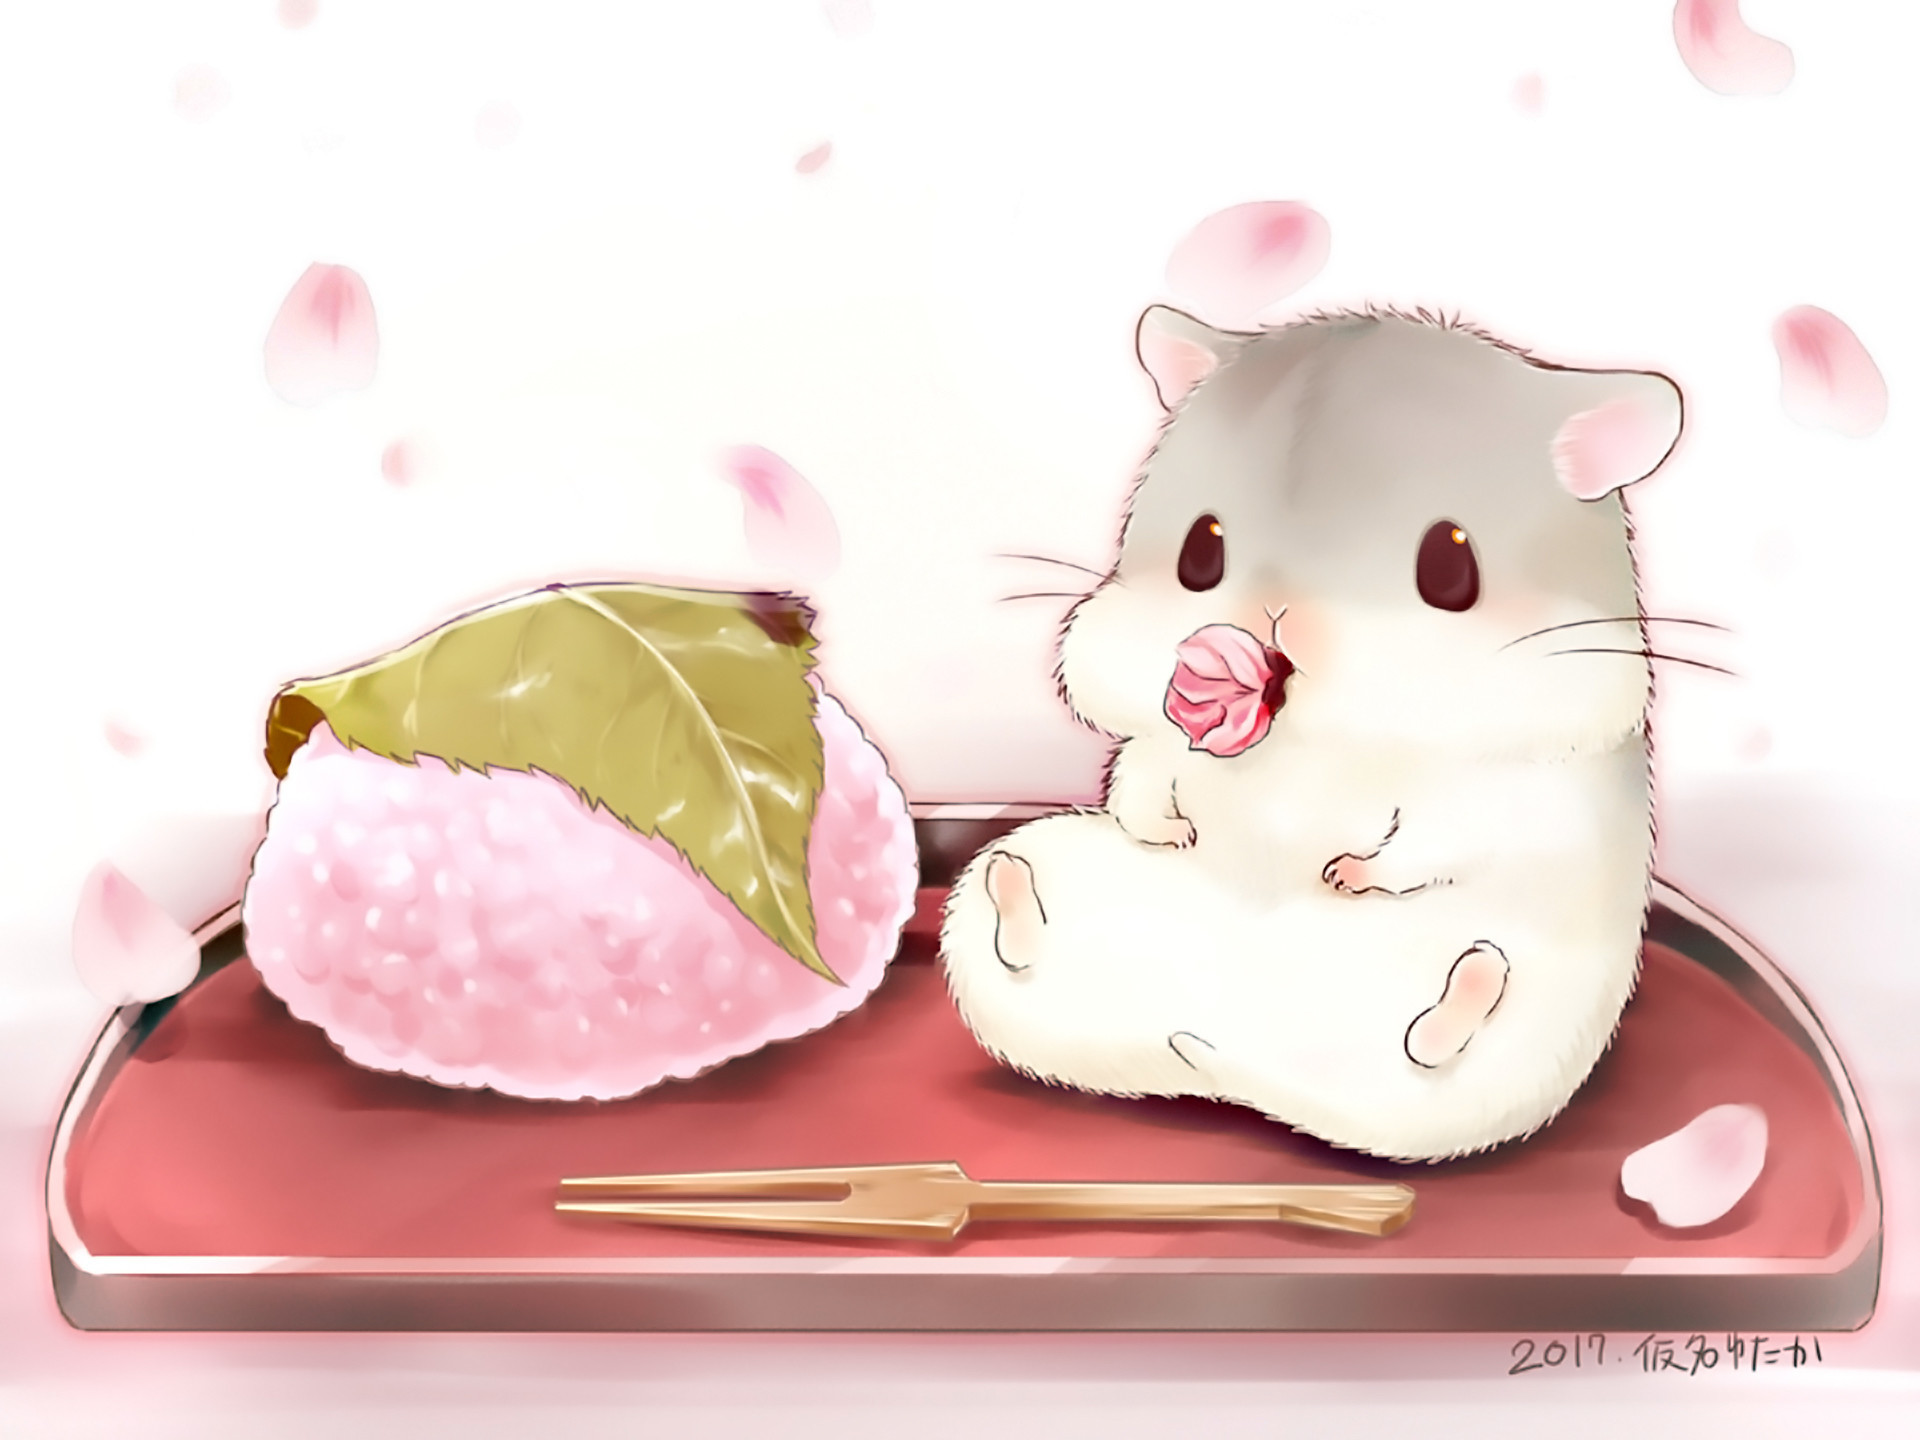 Kawaii Food Wallpaper 71 Images